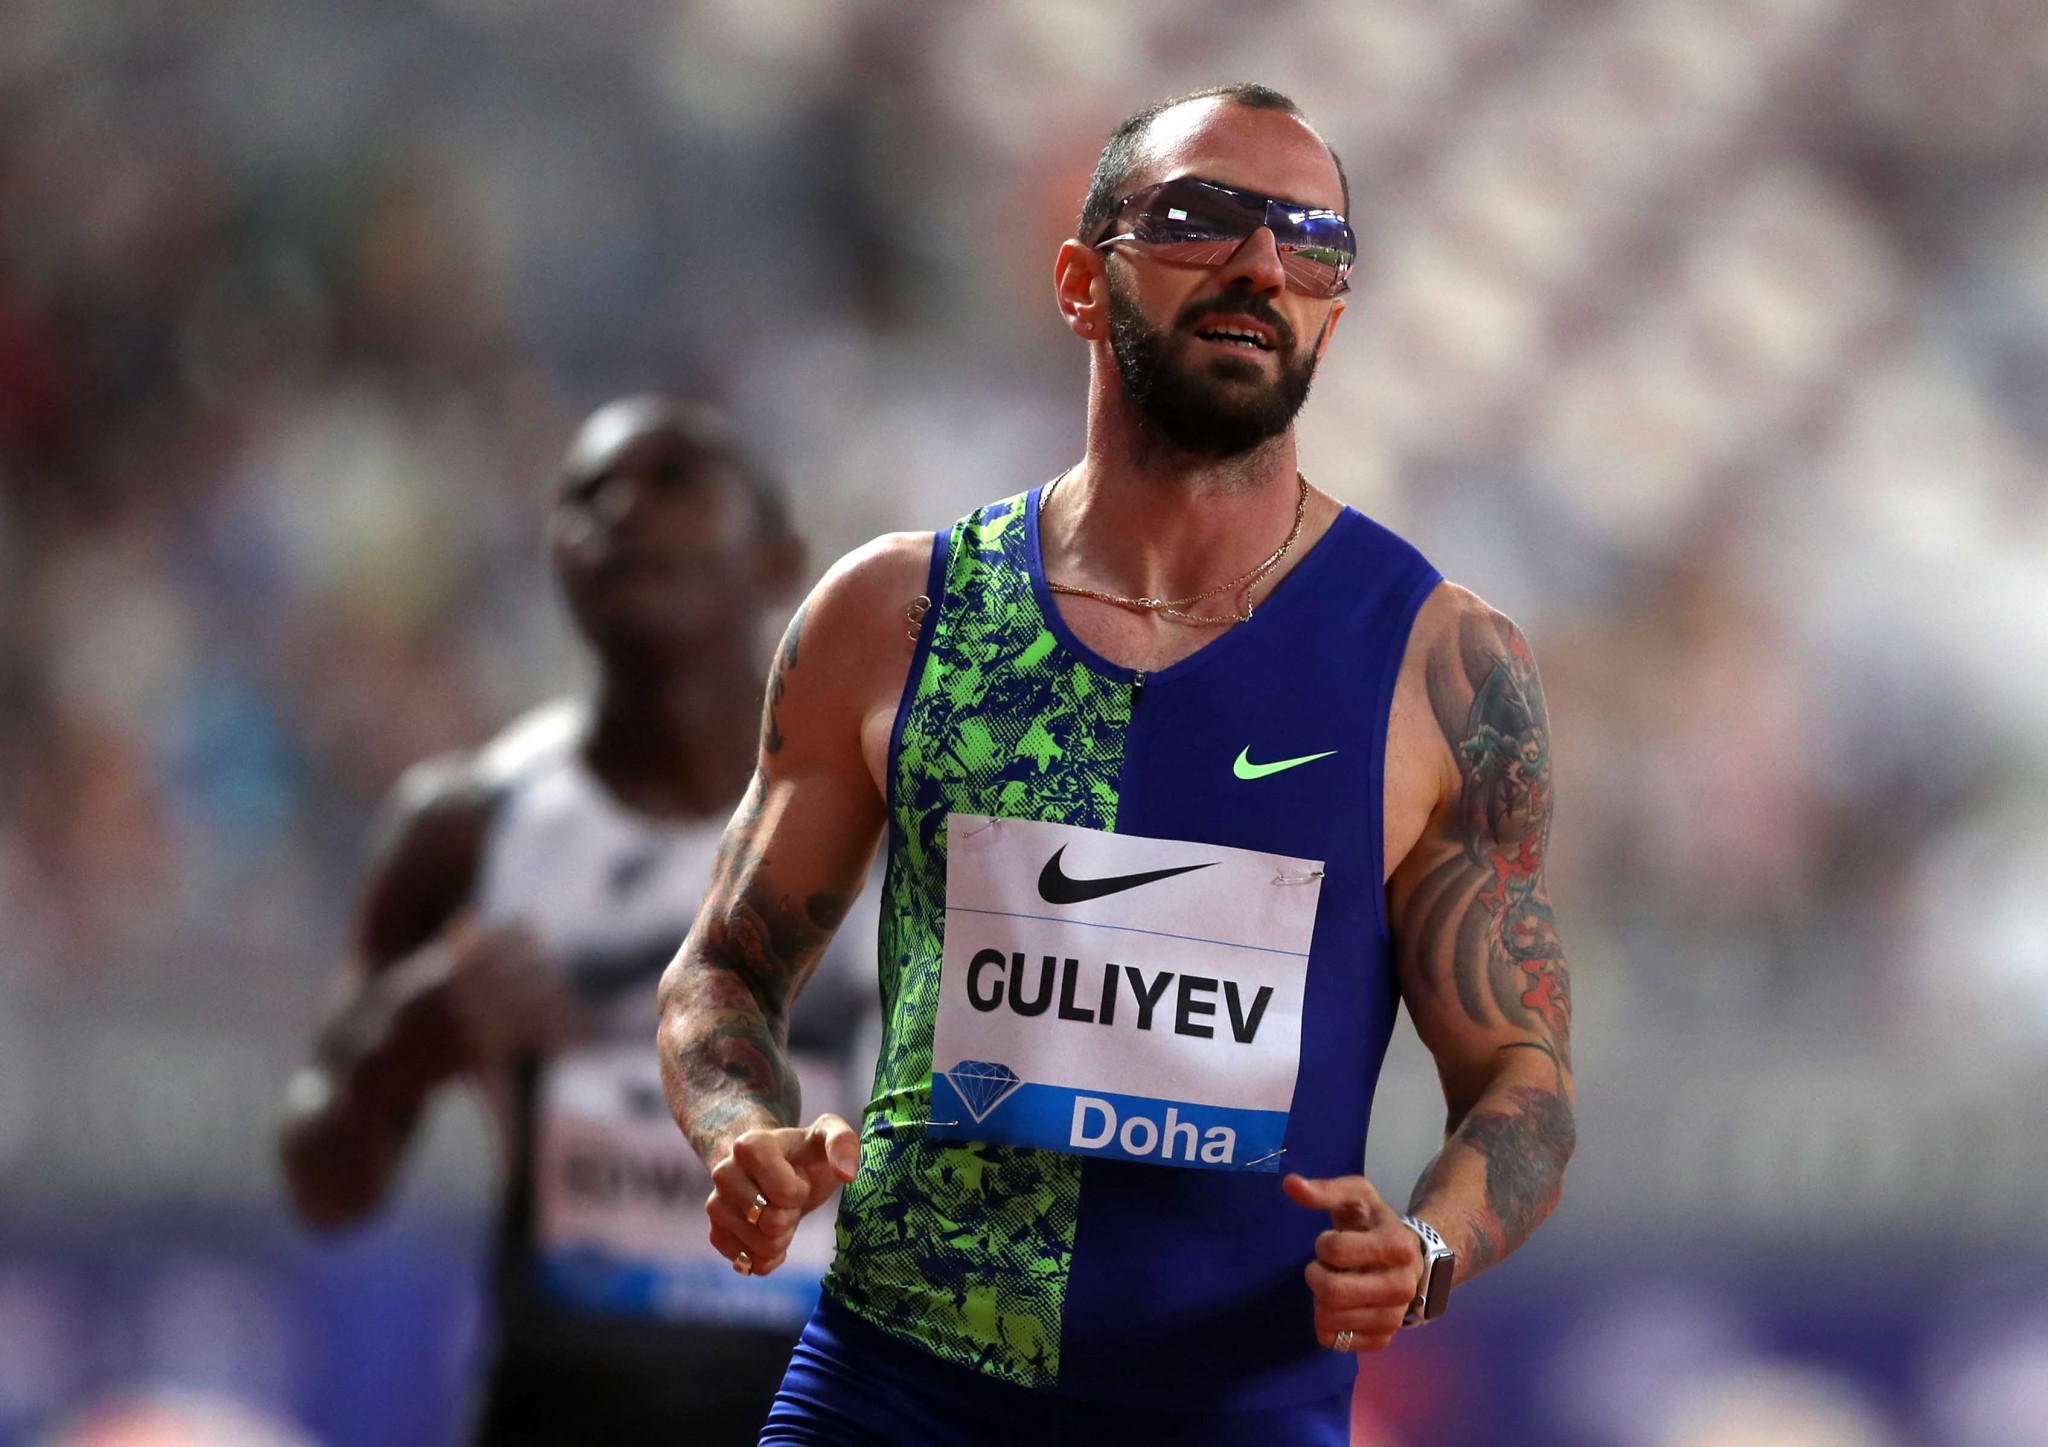 Guliyev and Visser seek Gloria Cup joy with eye on World Athletics Championships